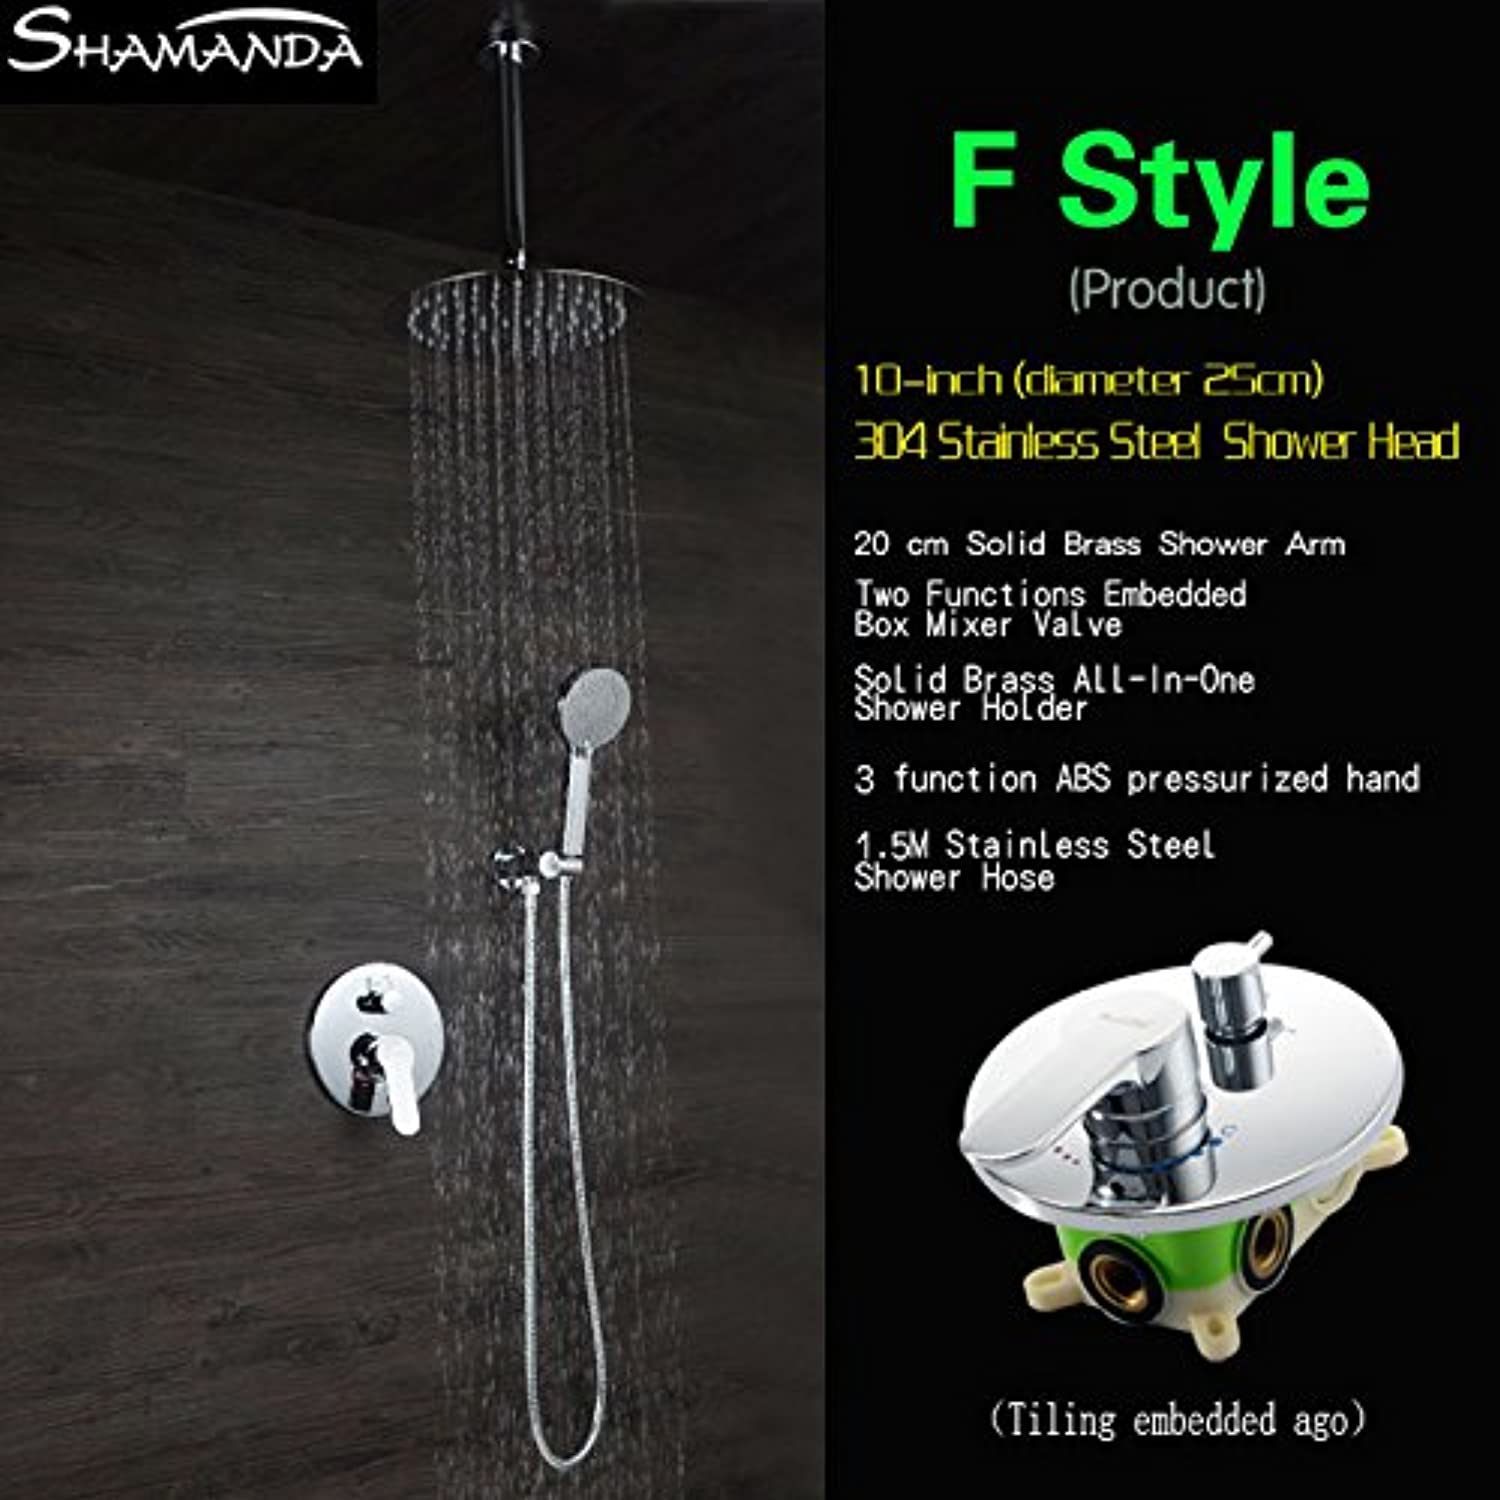 Luxury Concealed Round Two Functions Embedded Box Mixer Valve Shower Set with Various Styles Ceiling Shower Head and Hand Shower,F Style